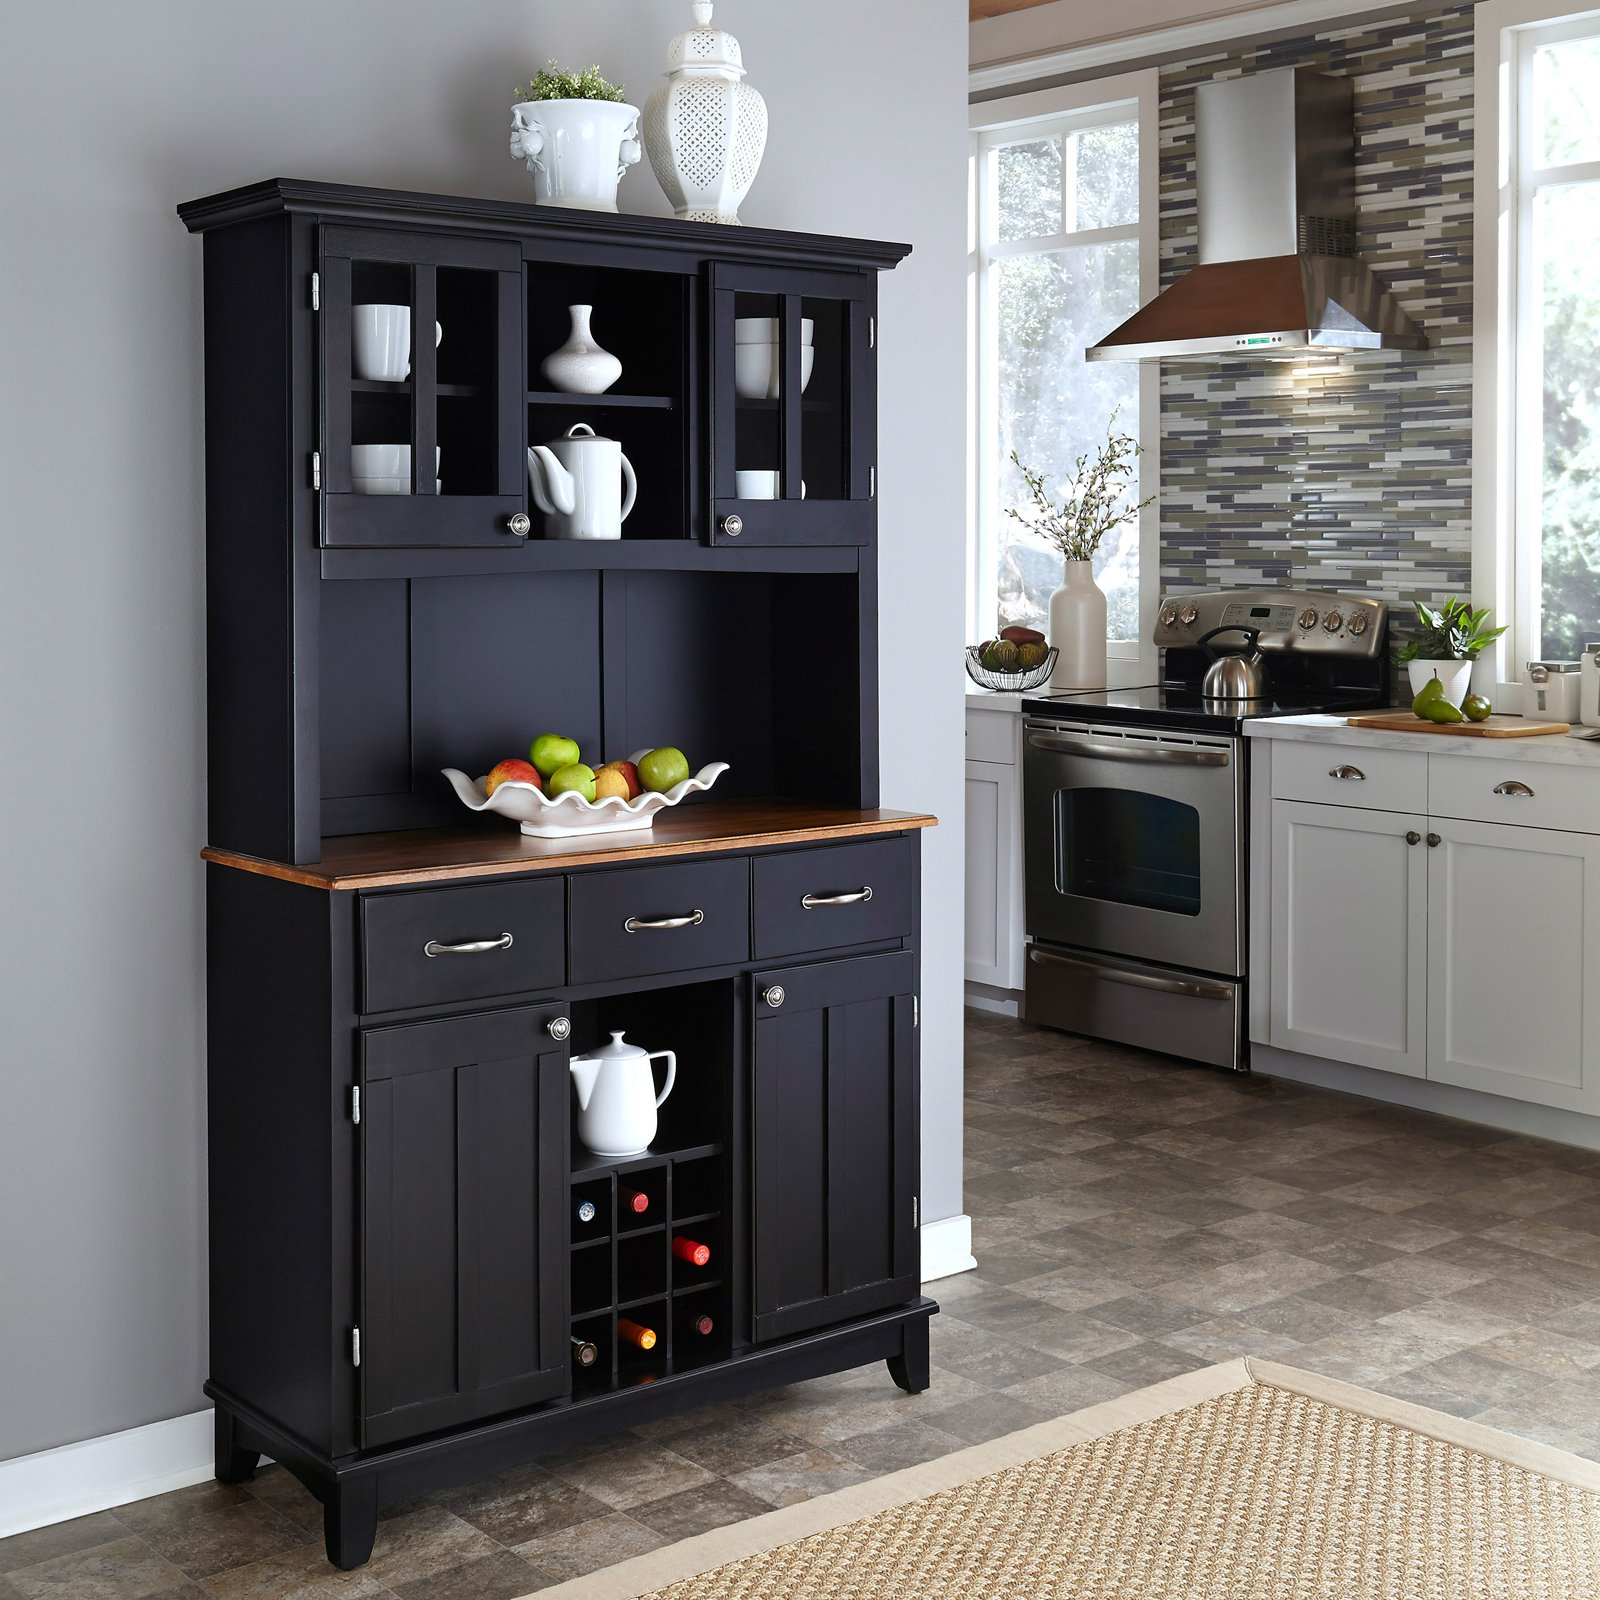 kitchen bakers rack copper appliances wooden ideas homesfeed black baker with drawers and cabinet inside white set natural rug